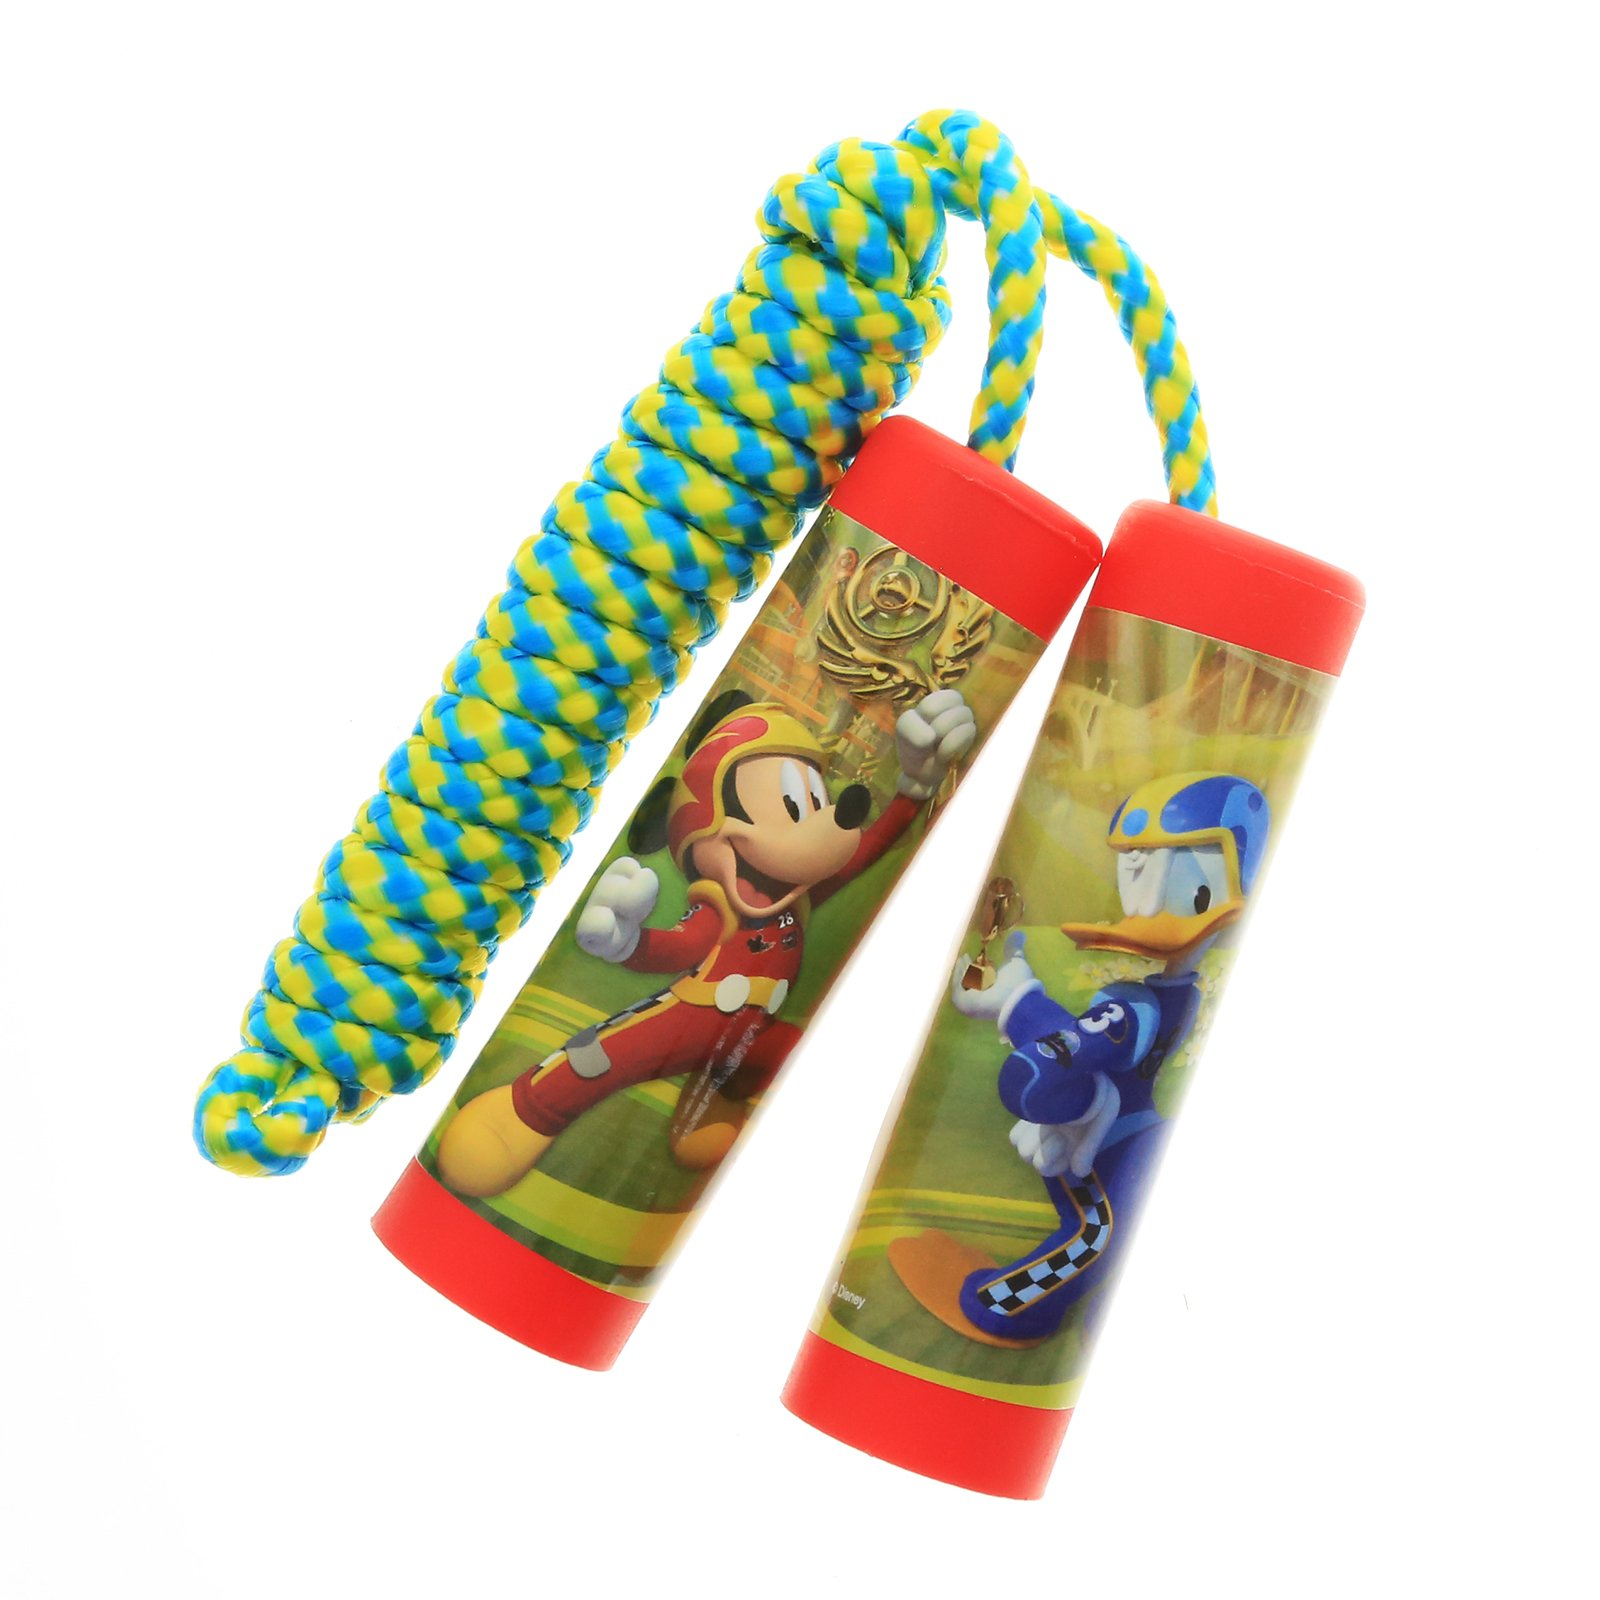 Disney Junior Mickey Roadster Racer Jump Rope Kids Exercise Toy